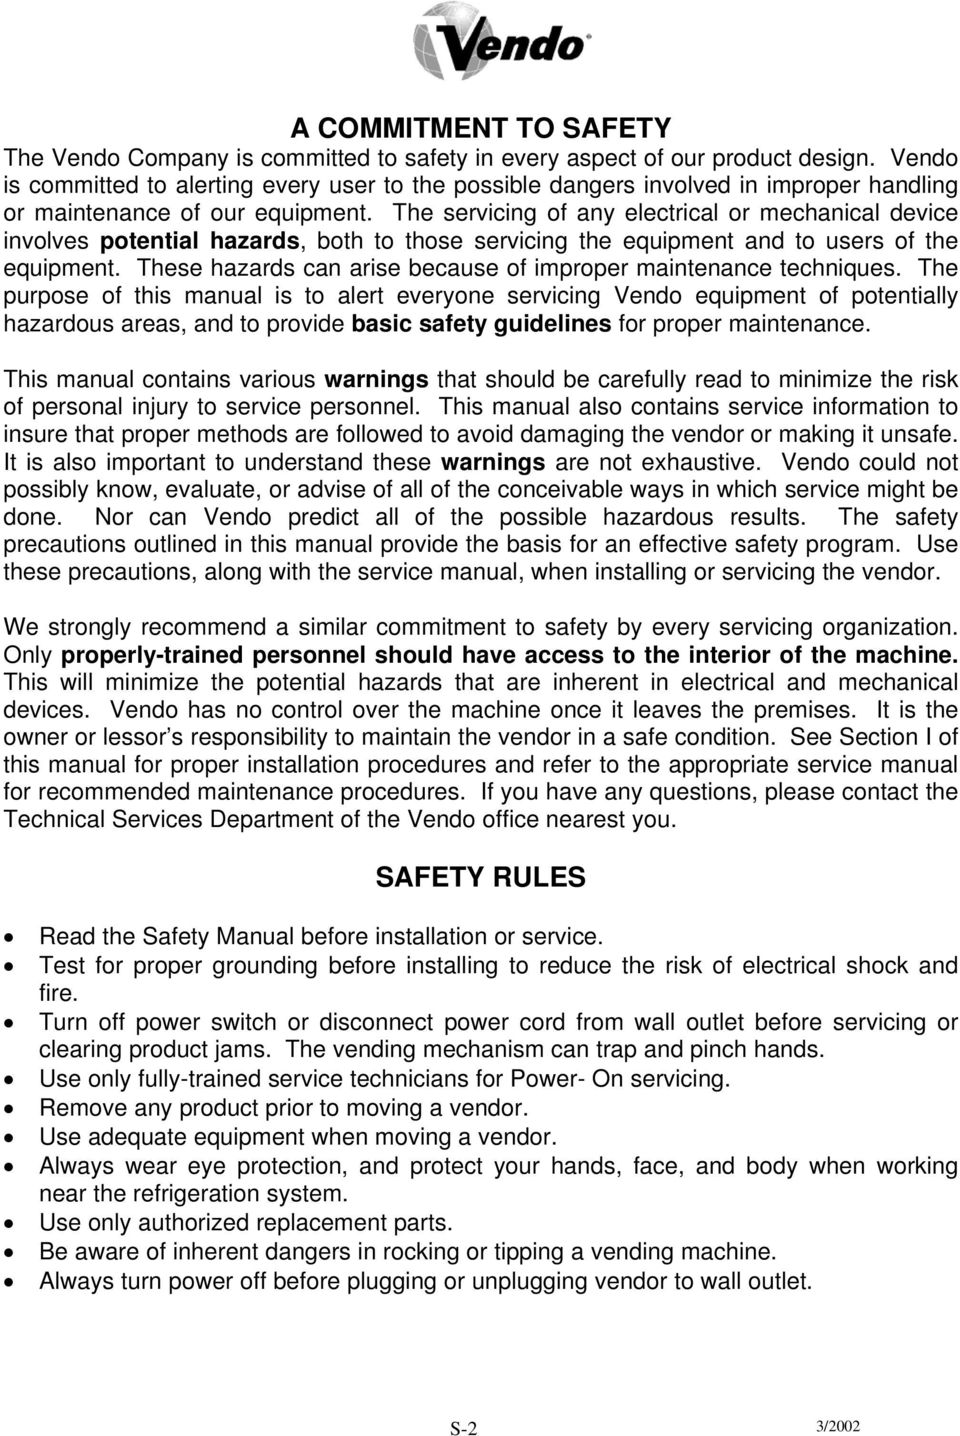 Vendo v max manual for coca cola identified equipment the vendo the servicing of any electrical or mechanical device involves potential hazards both to those servicing sciox Gallery